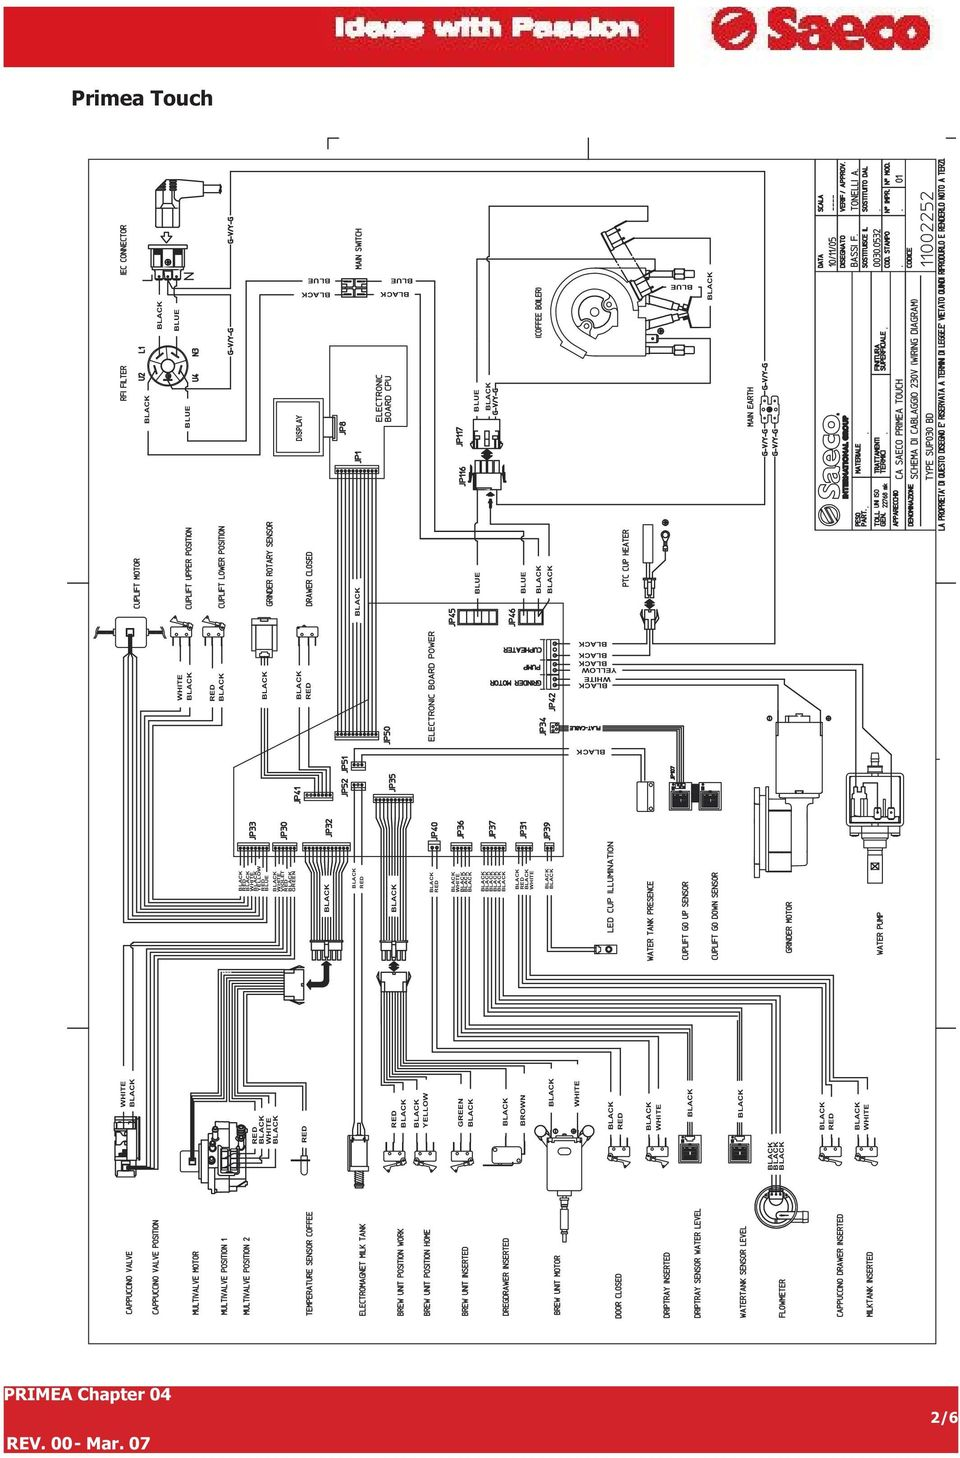 saeco wiring diagram images